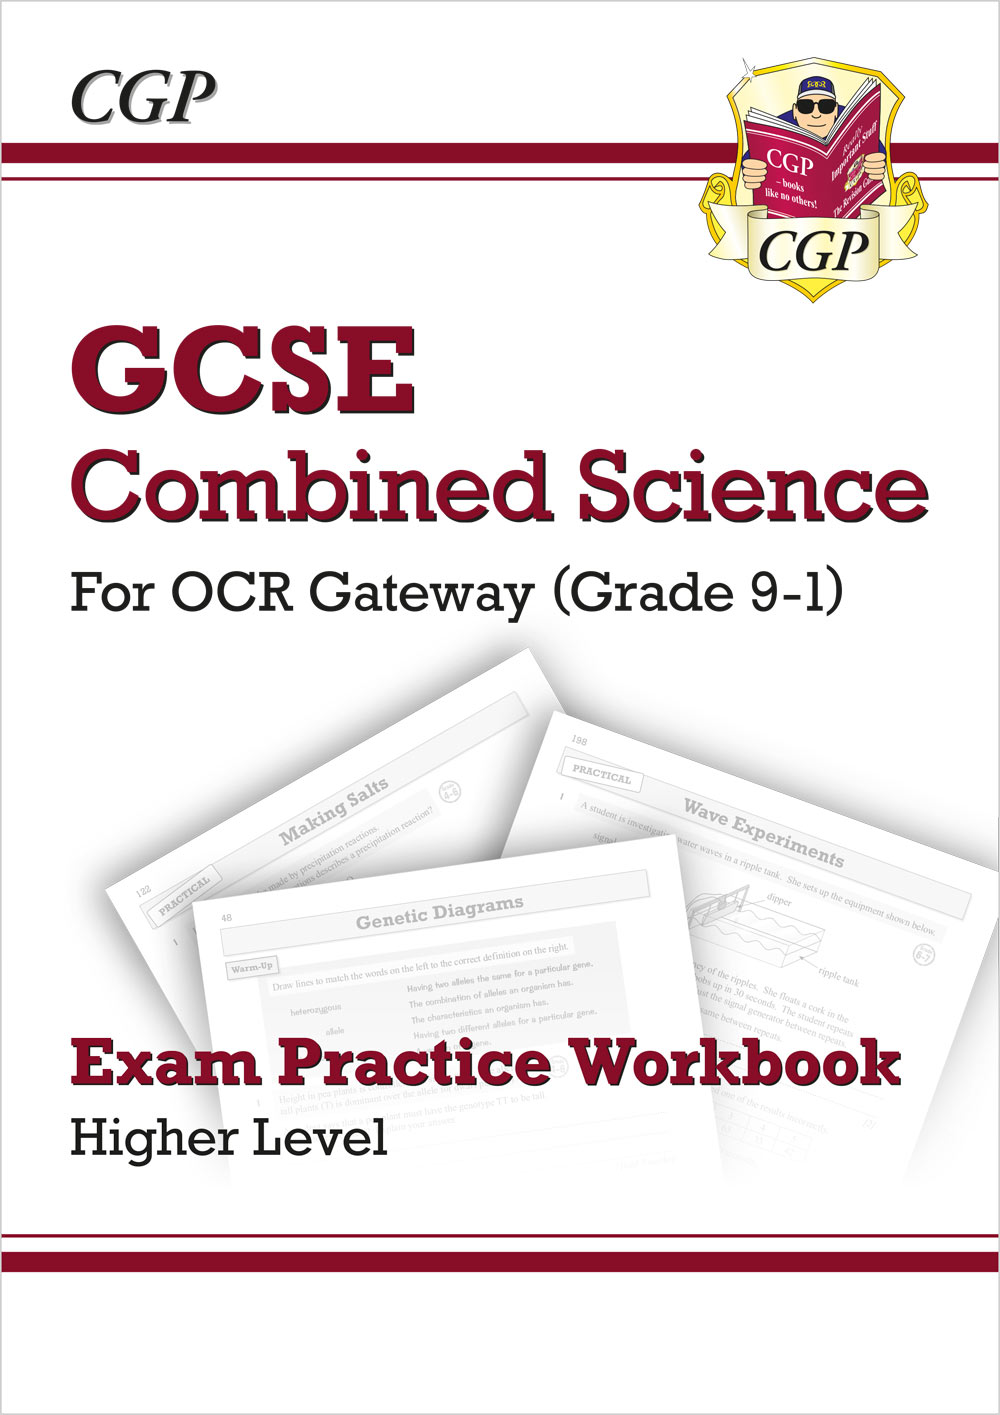 SRHQ41 - Grade 9-1 GCSE Combined Science: OCR Gateway Exam Practice Workbook - Higher